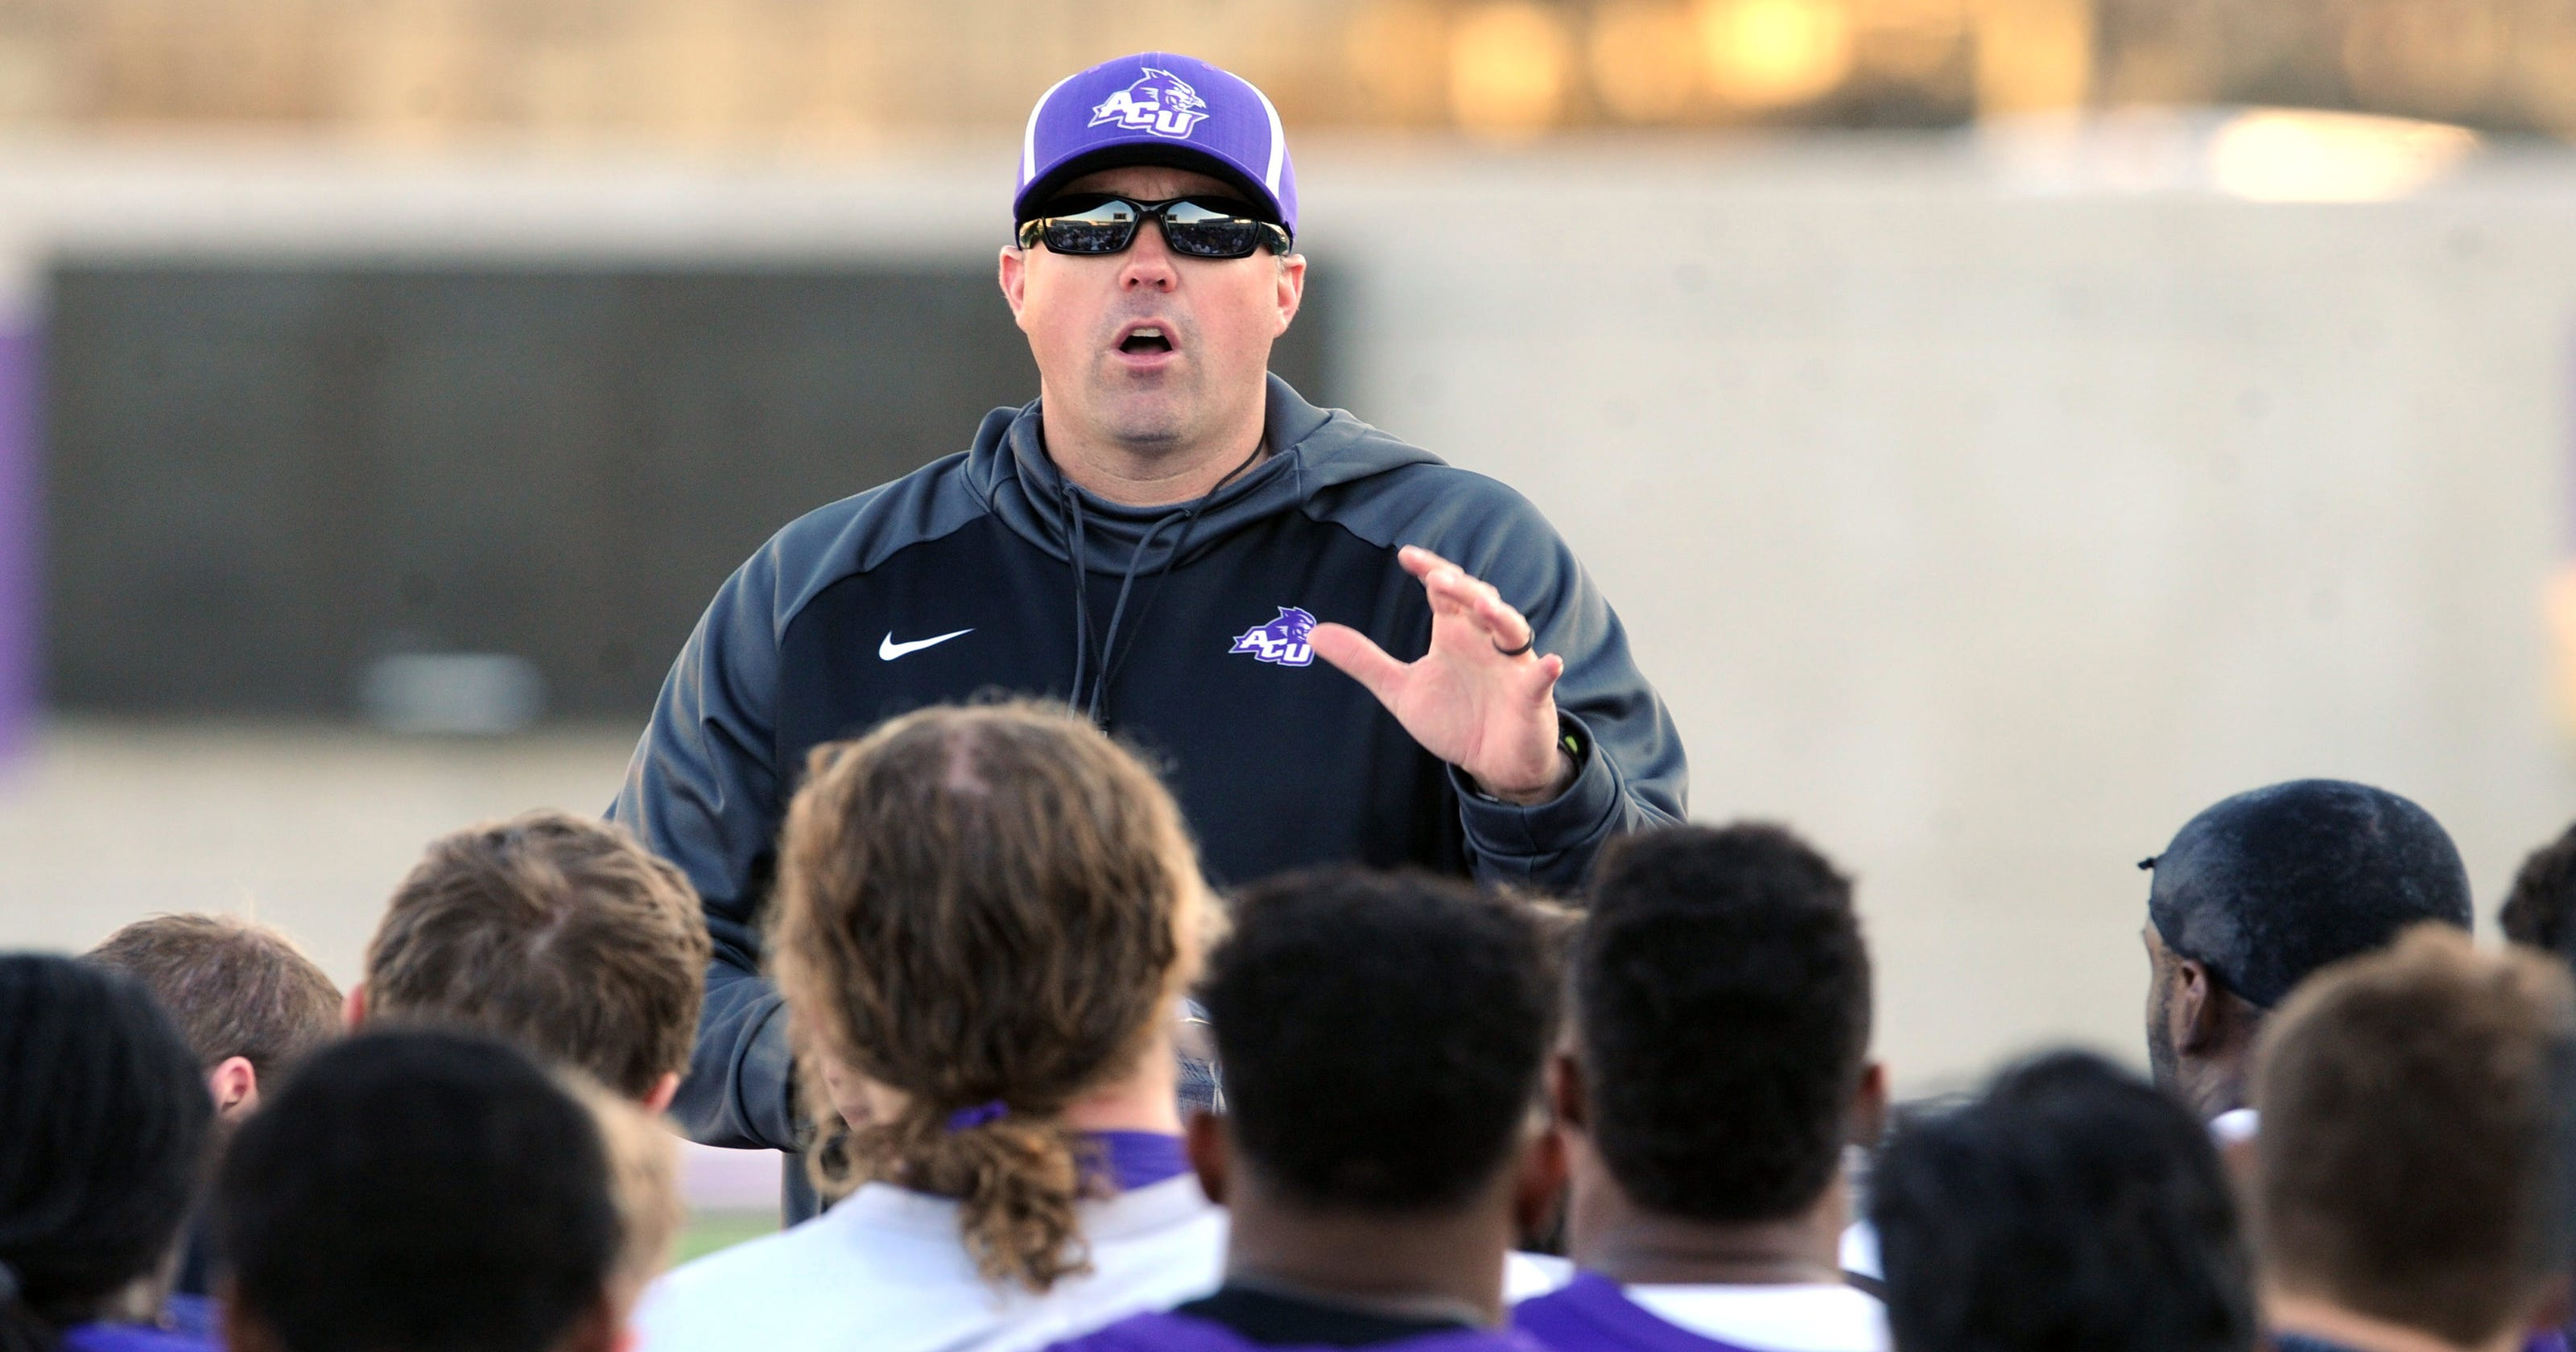 ACU football coach Dorrel agrees to contract extension